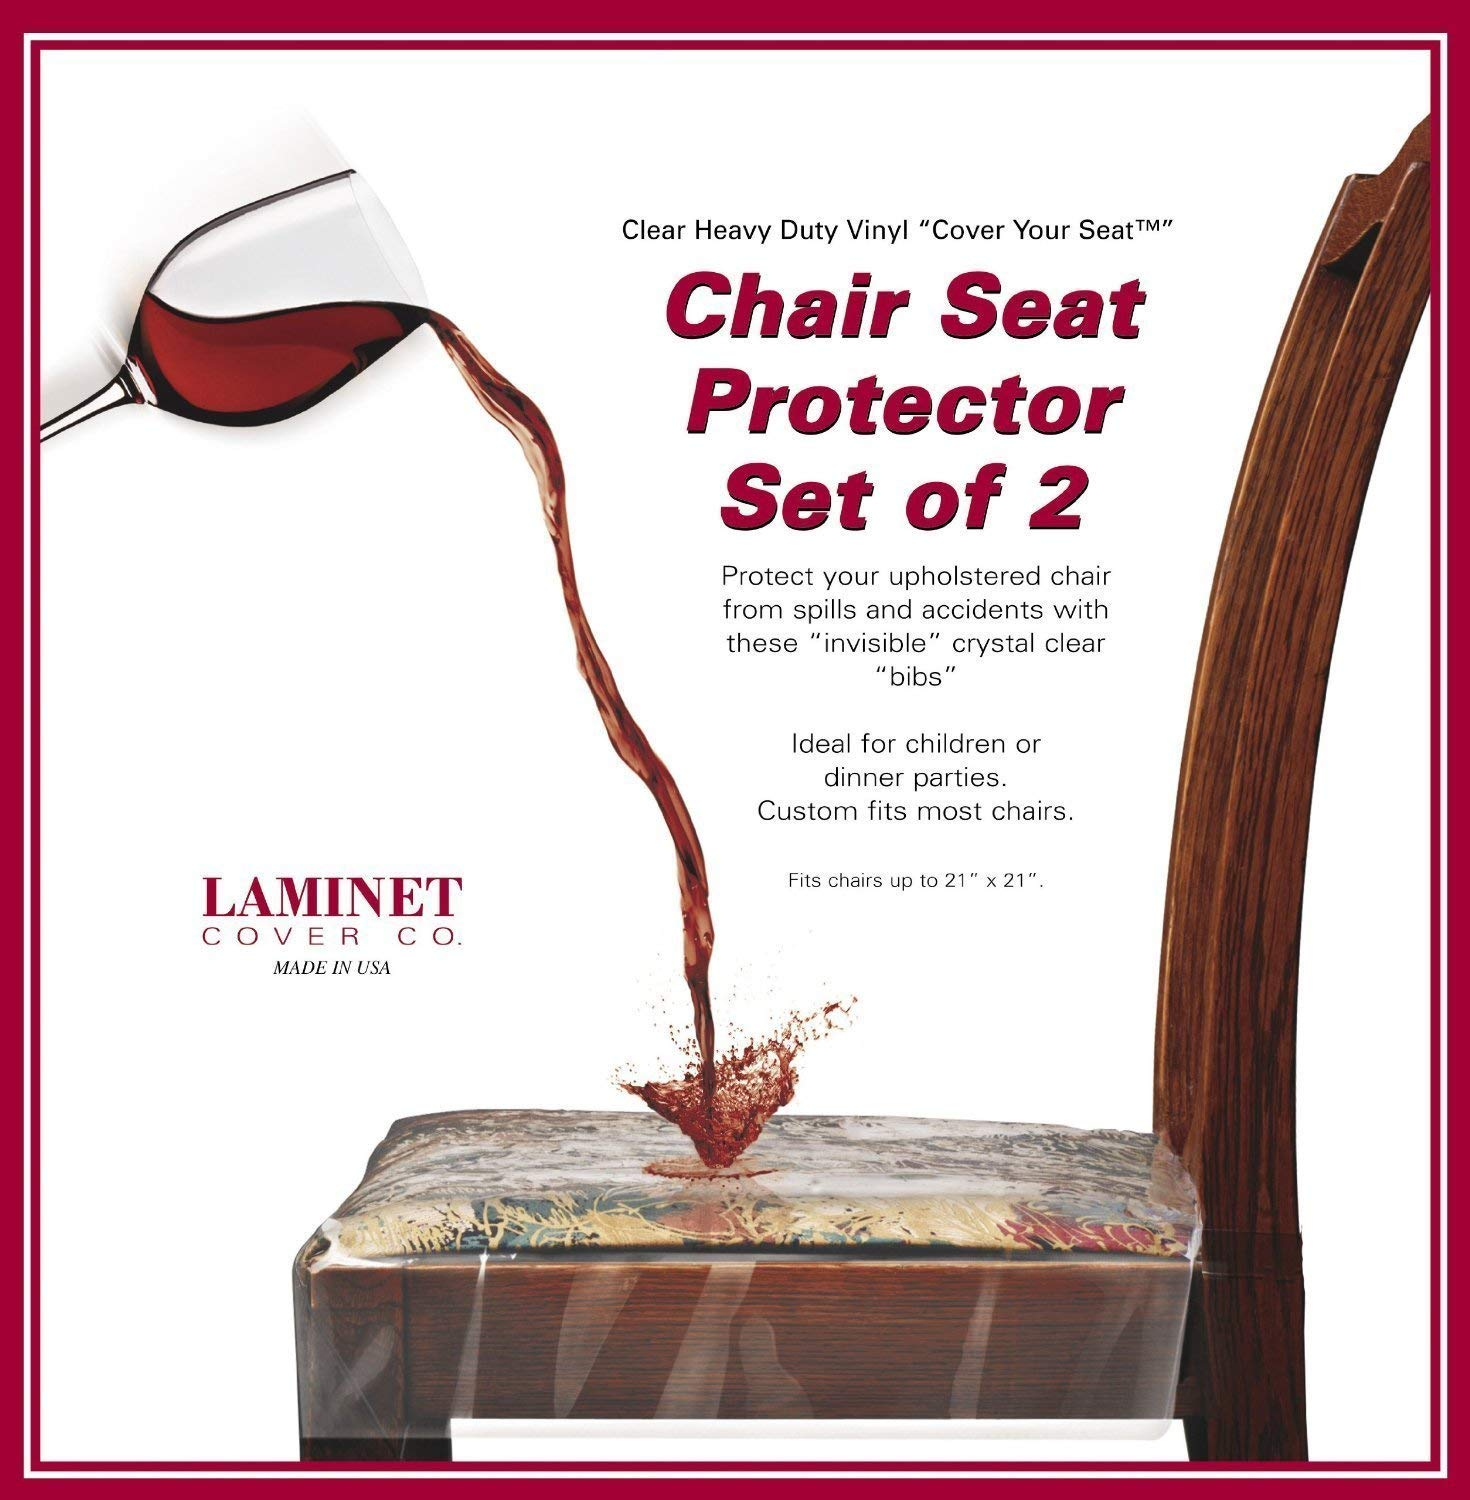 Clear Vinyl Chair Protectors Fits Chairs up to 21 Inches by 21 Inches - Set of 4 (Clear) Laminet